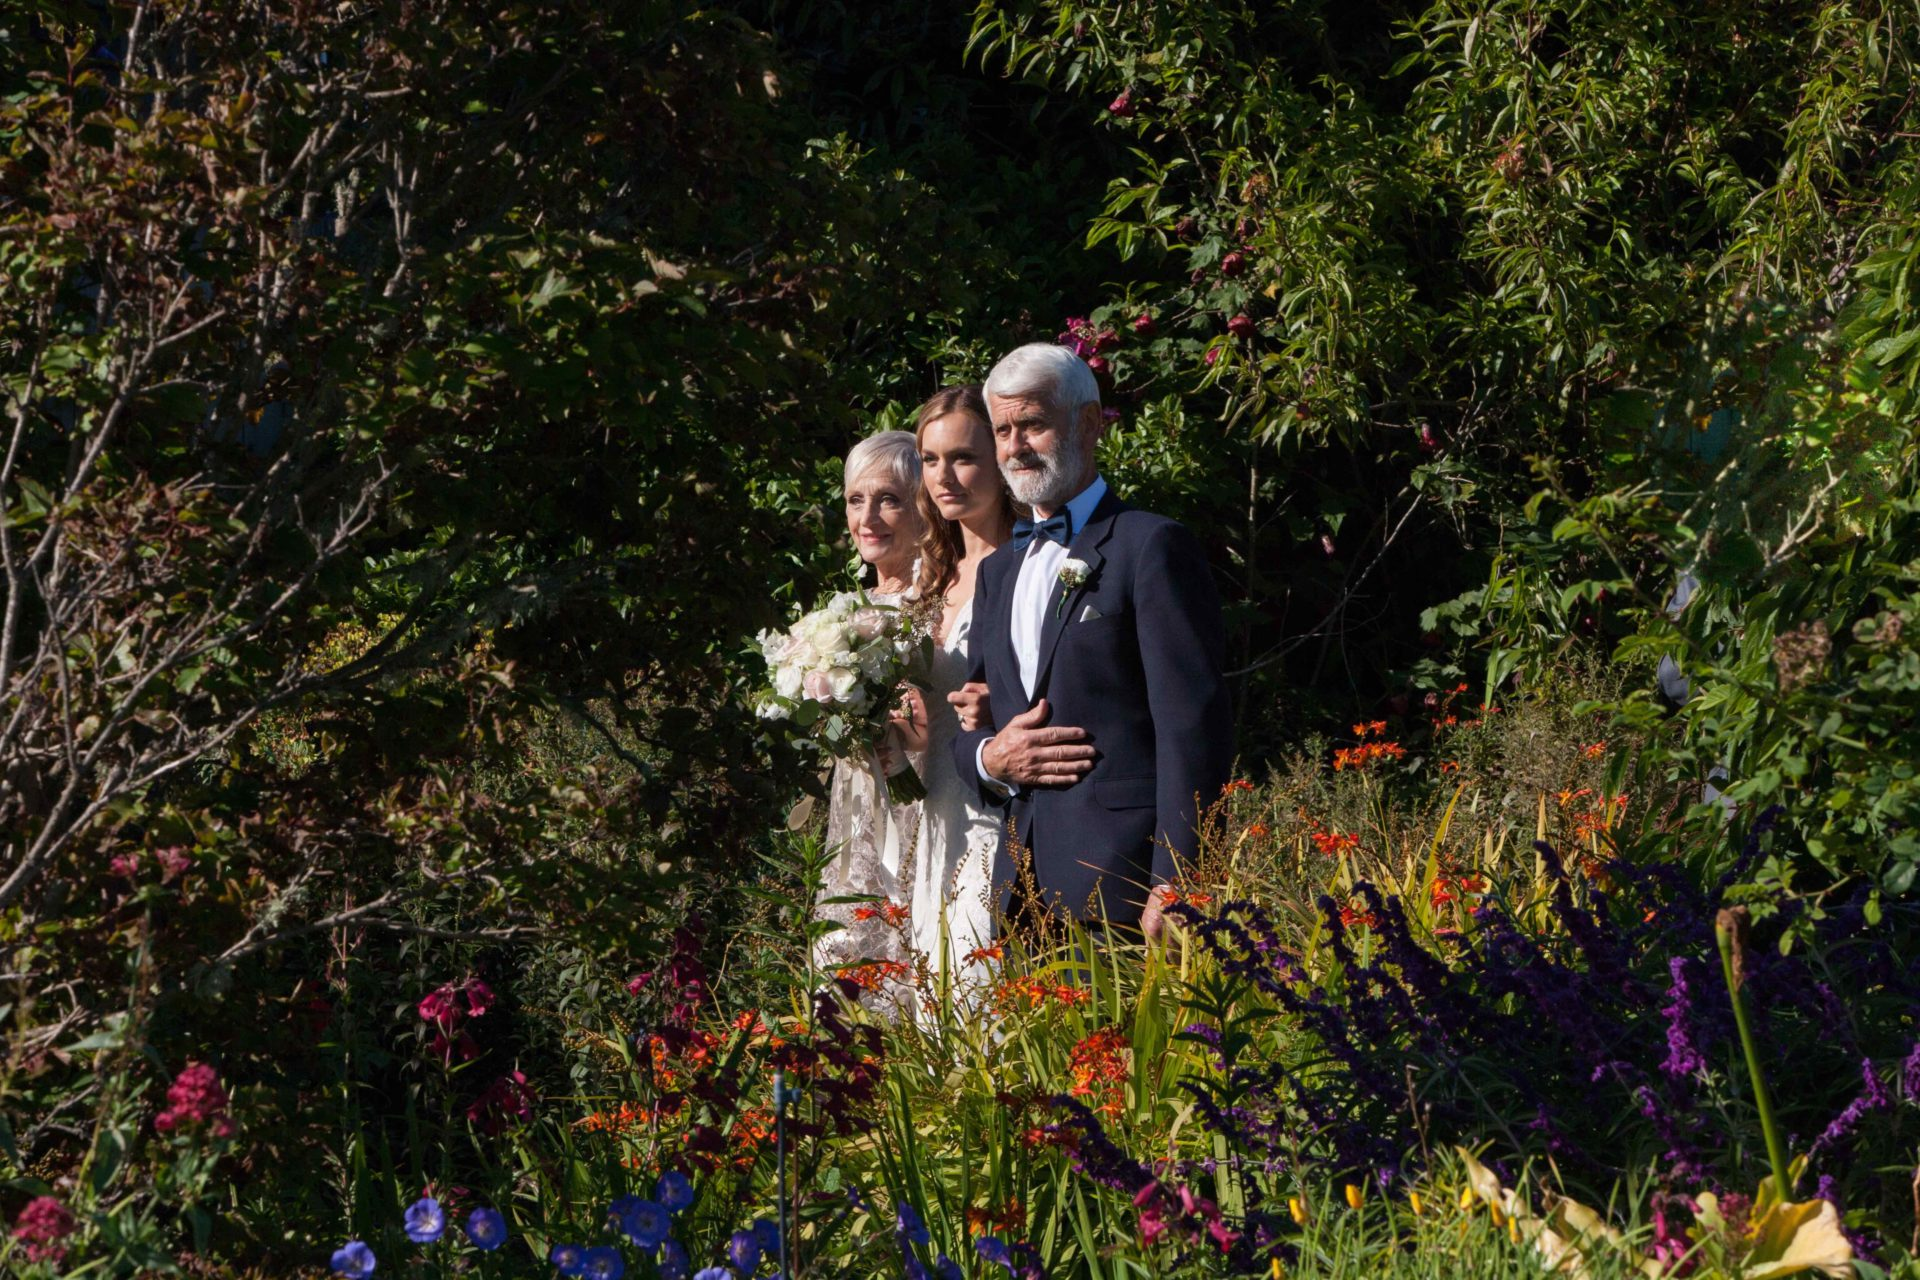 Wedding ceremony in the MacCallum House Inn's gardens.